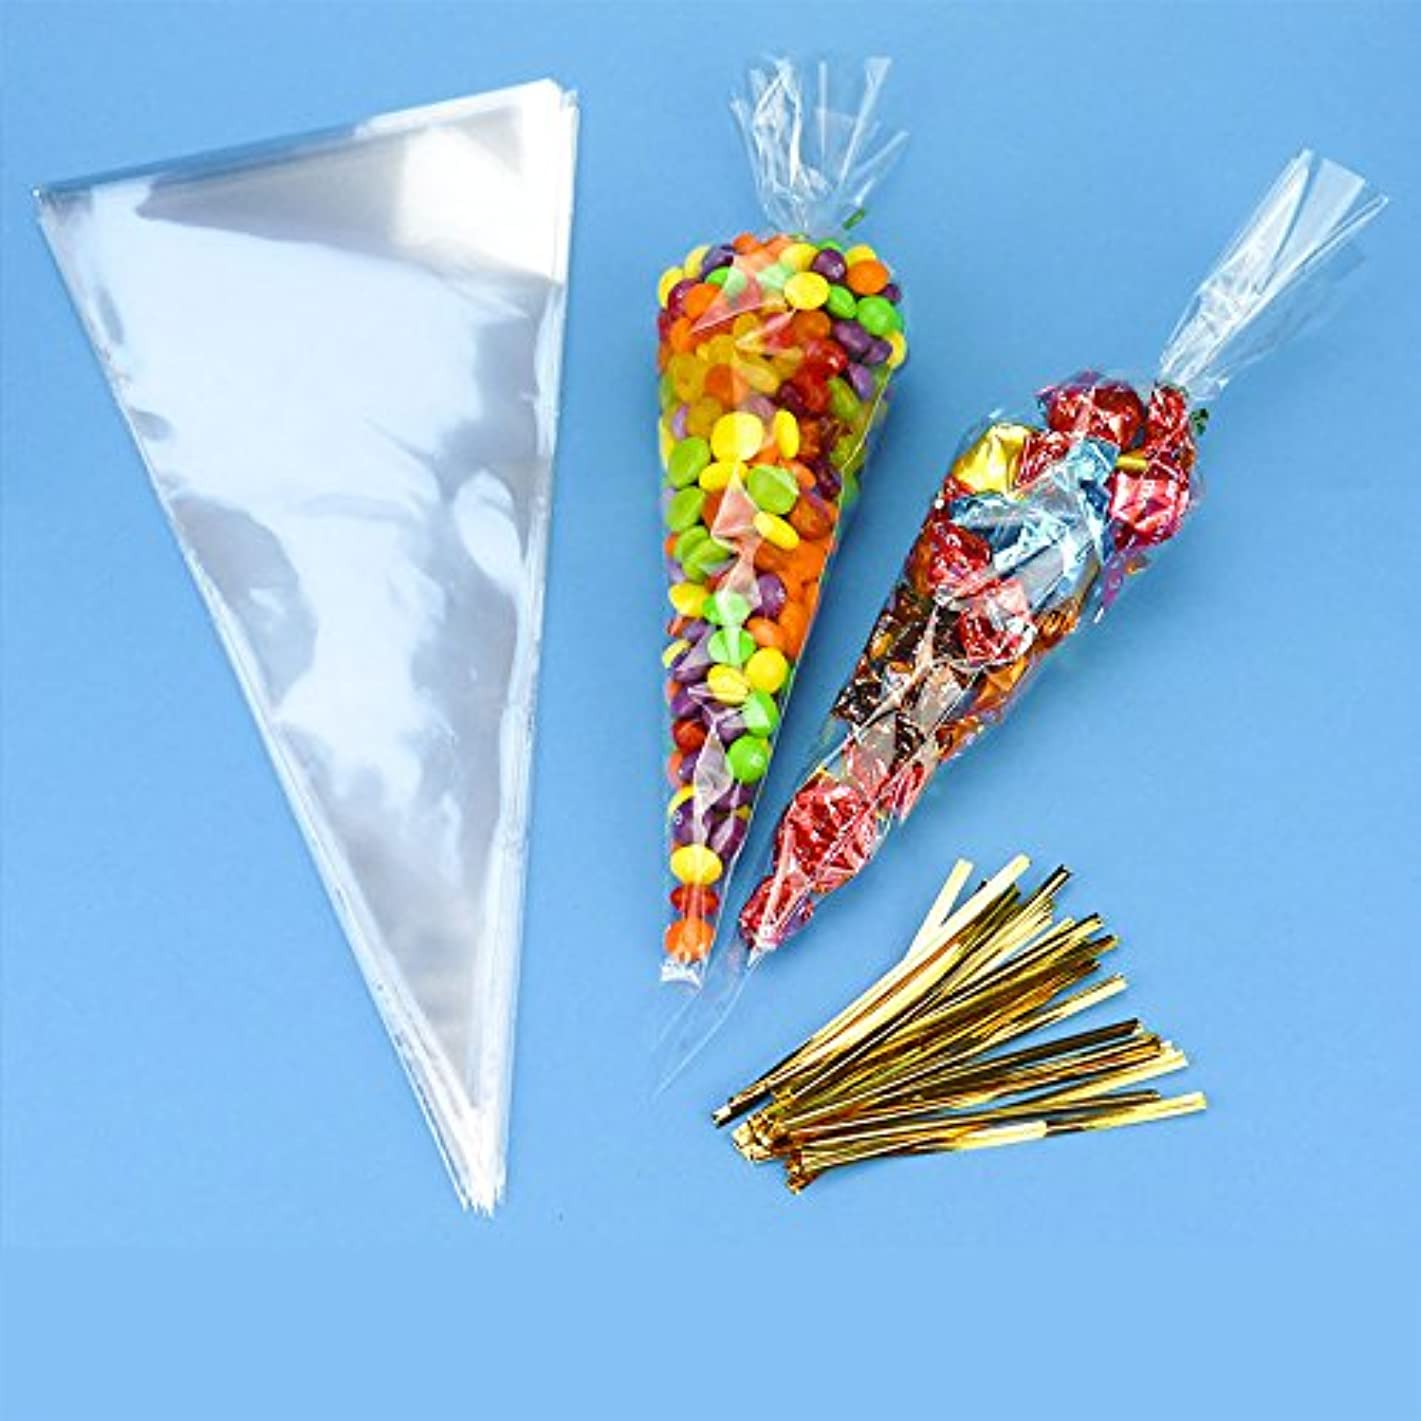 Loriver 50 Cellophane Tapered Bags and Ties Candy Party Wedding Gift Bag